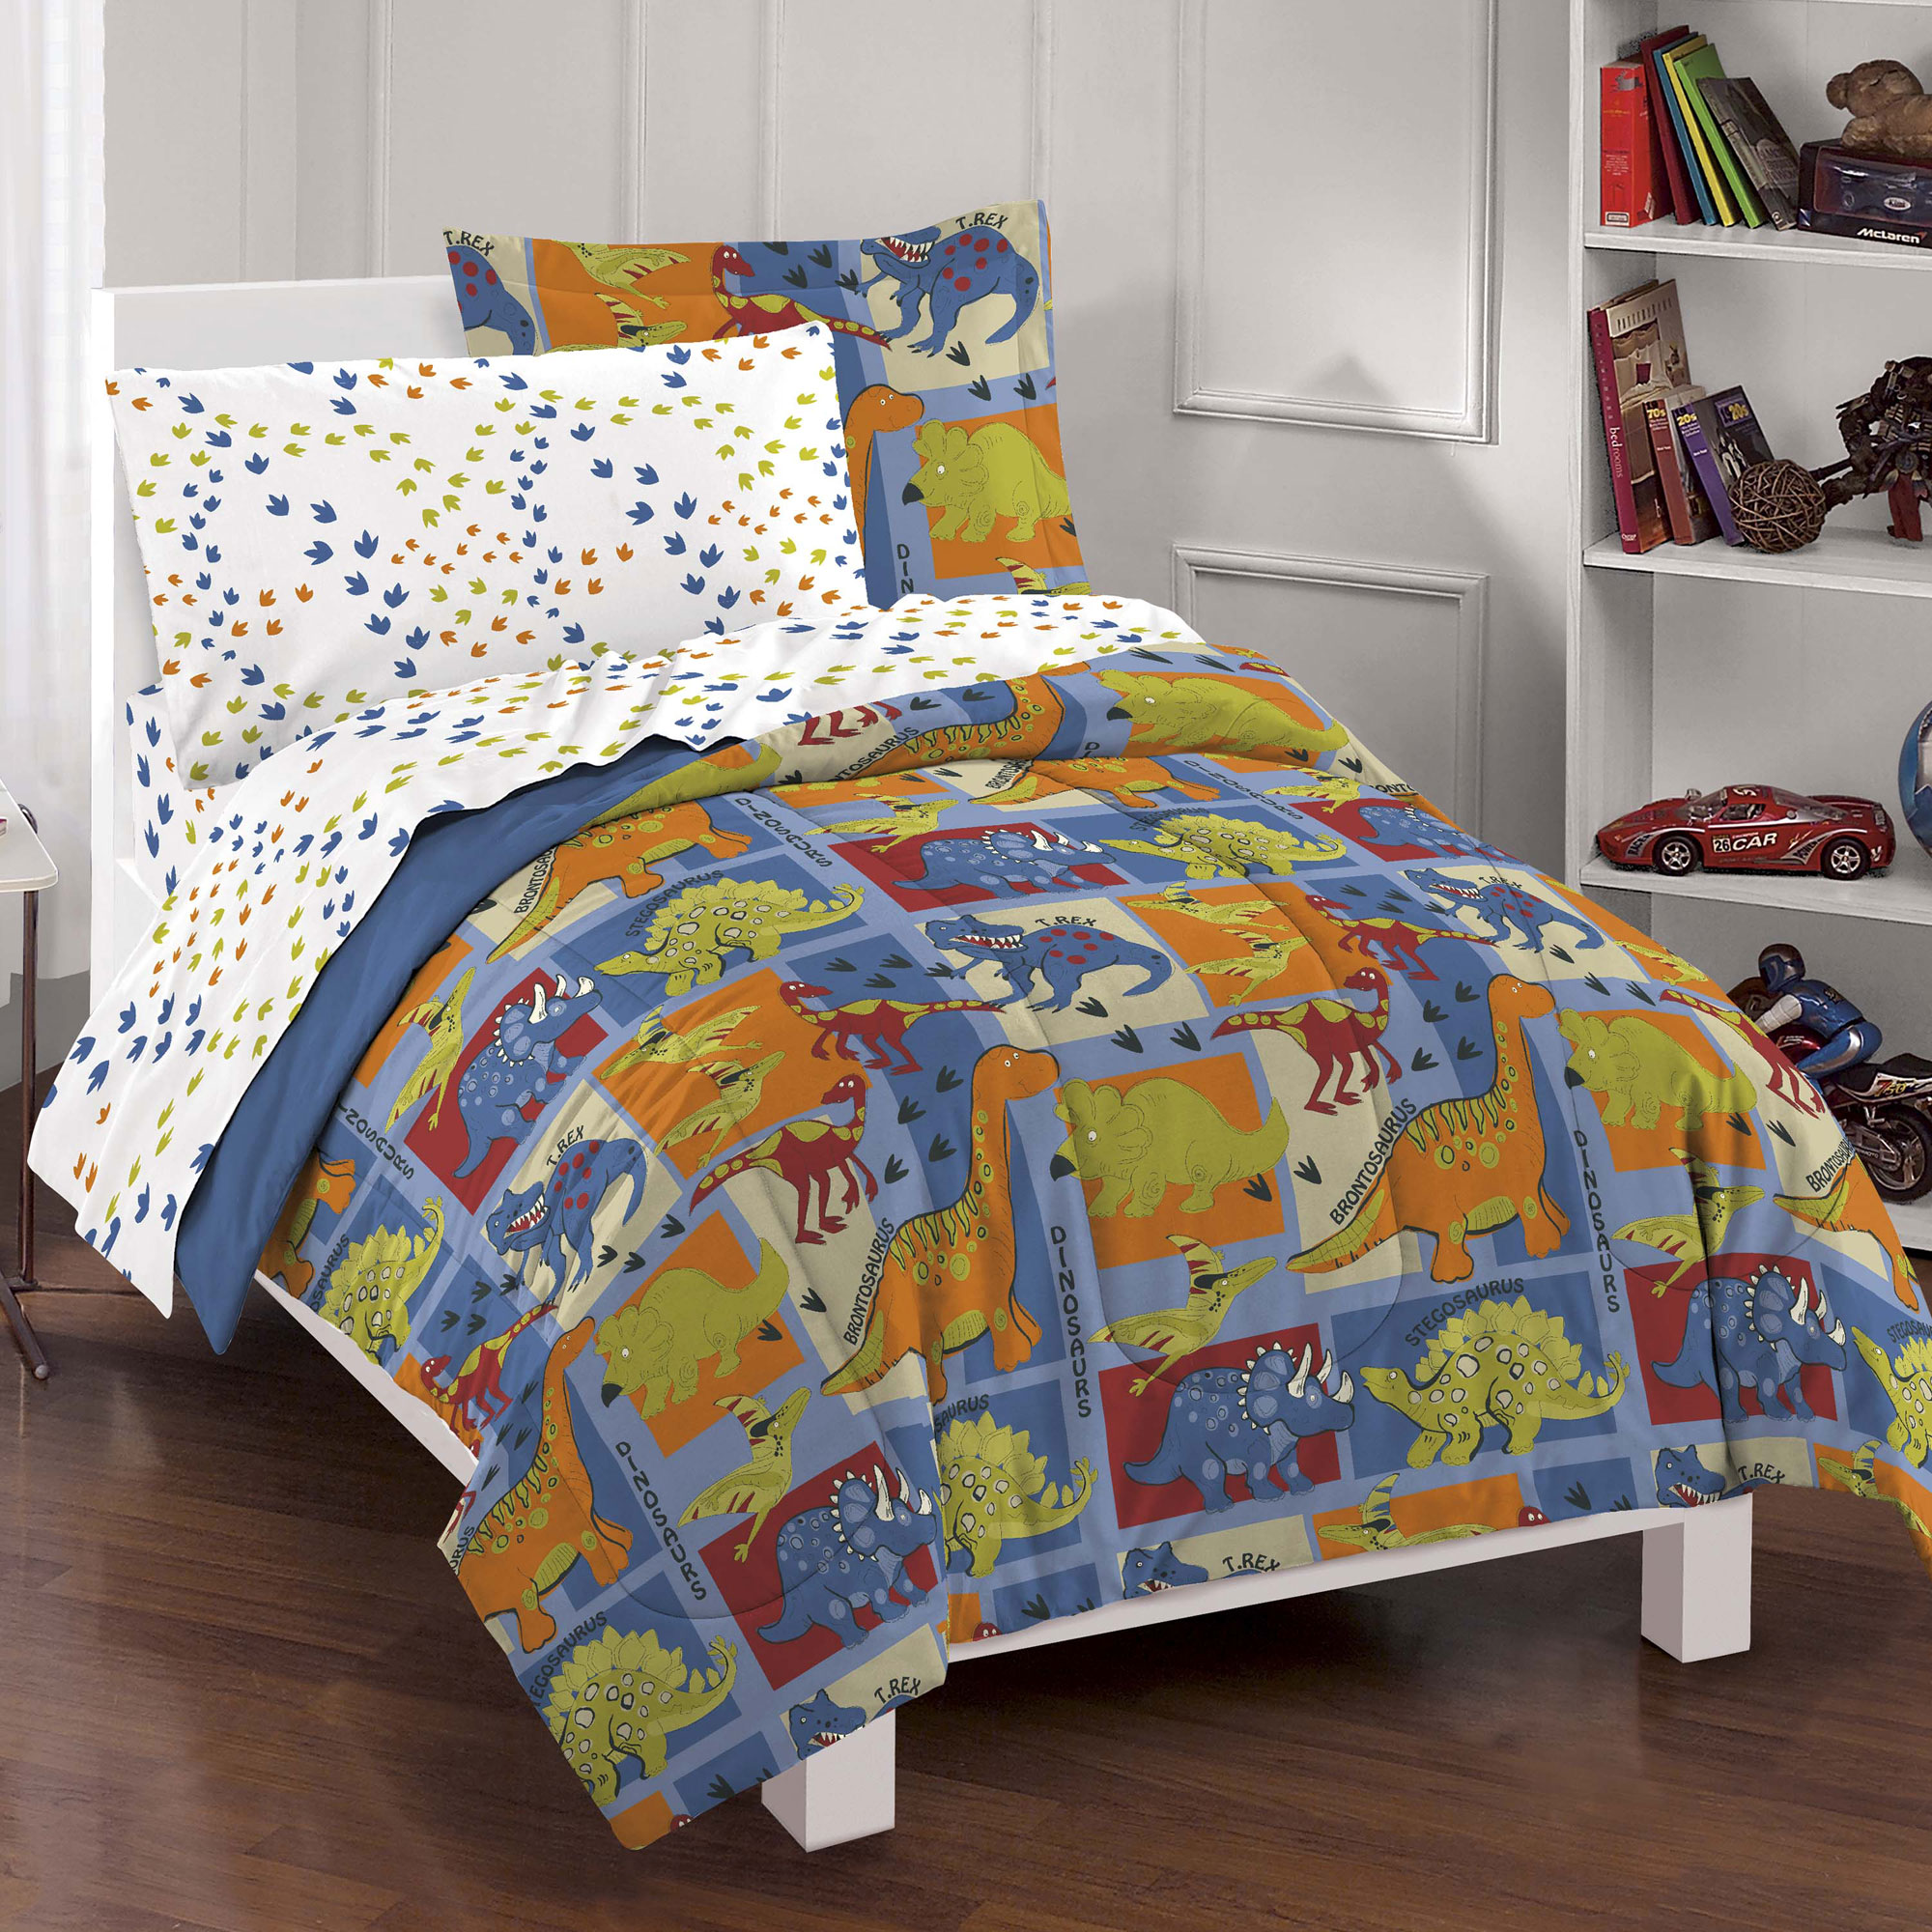 bed afbe ip set sets bedding quilt boys collage sports com walmart